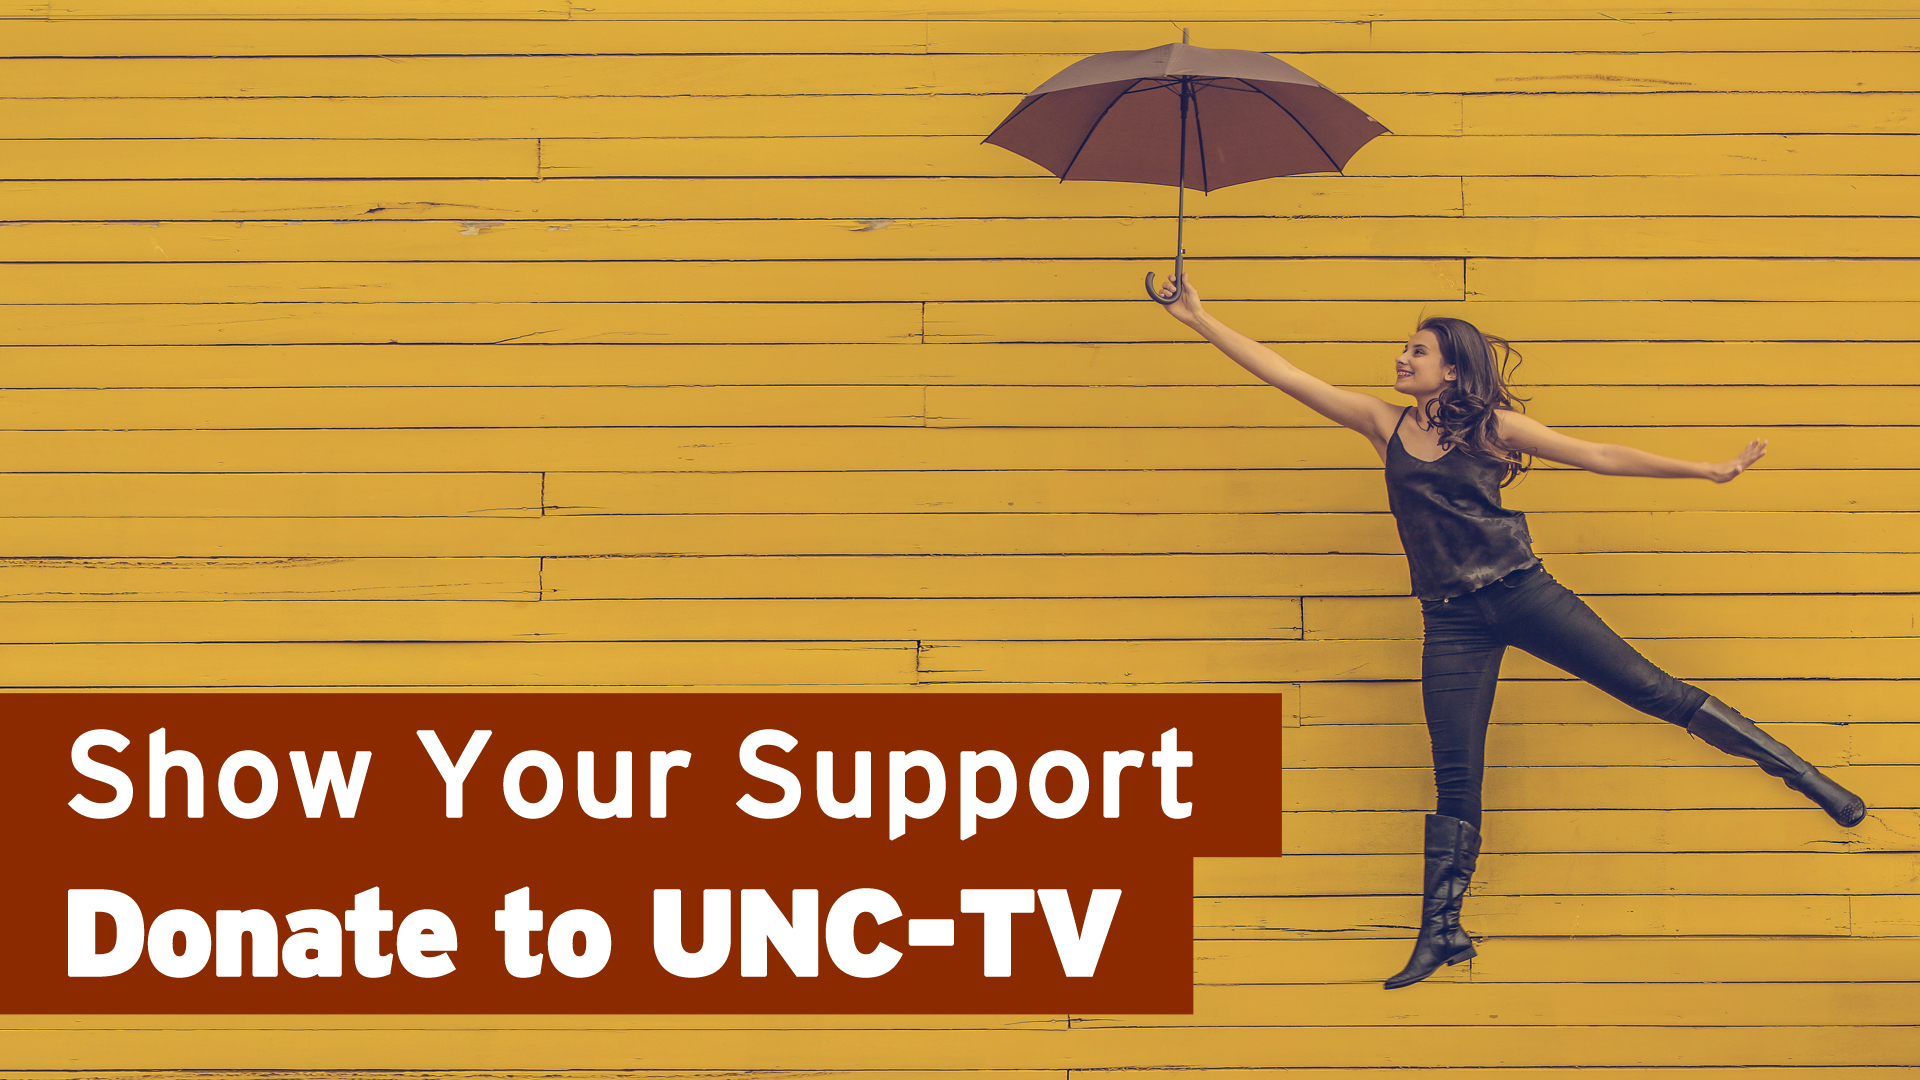 Donate to UNC-TV